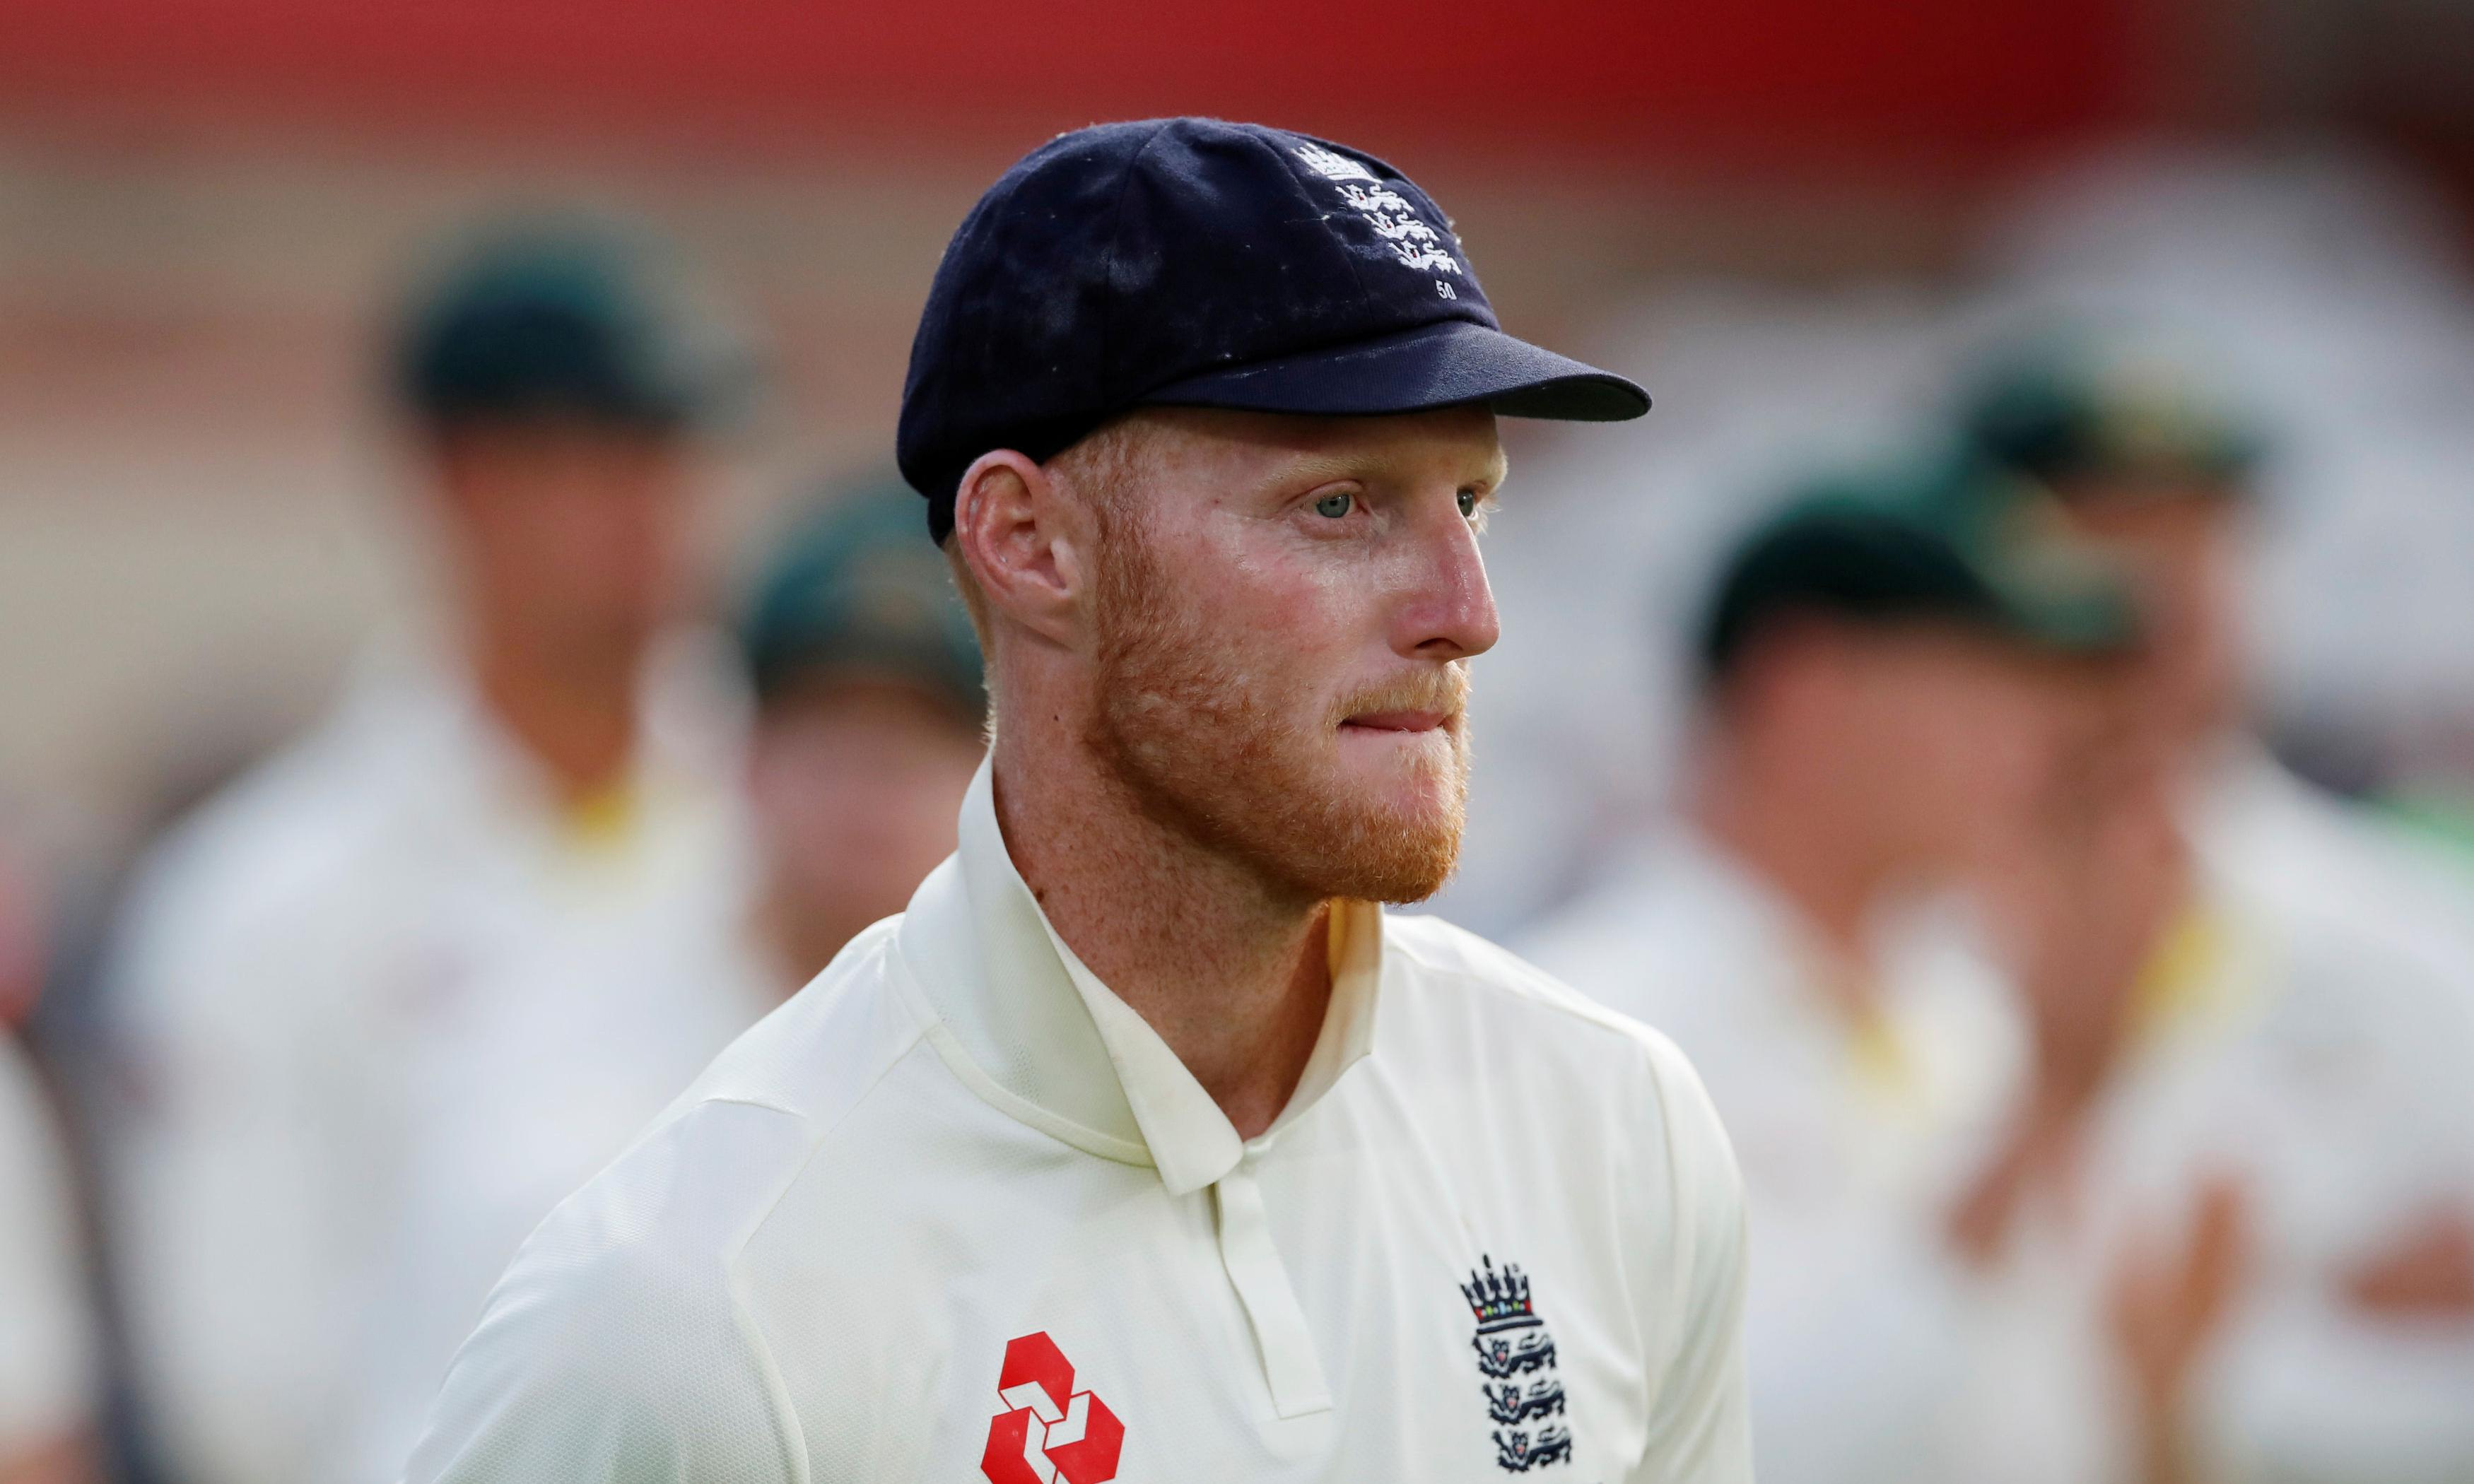 Ben Stokes takes legal action against Sun over story of family tragedy